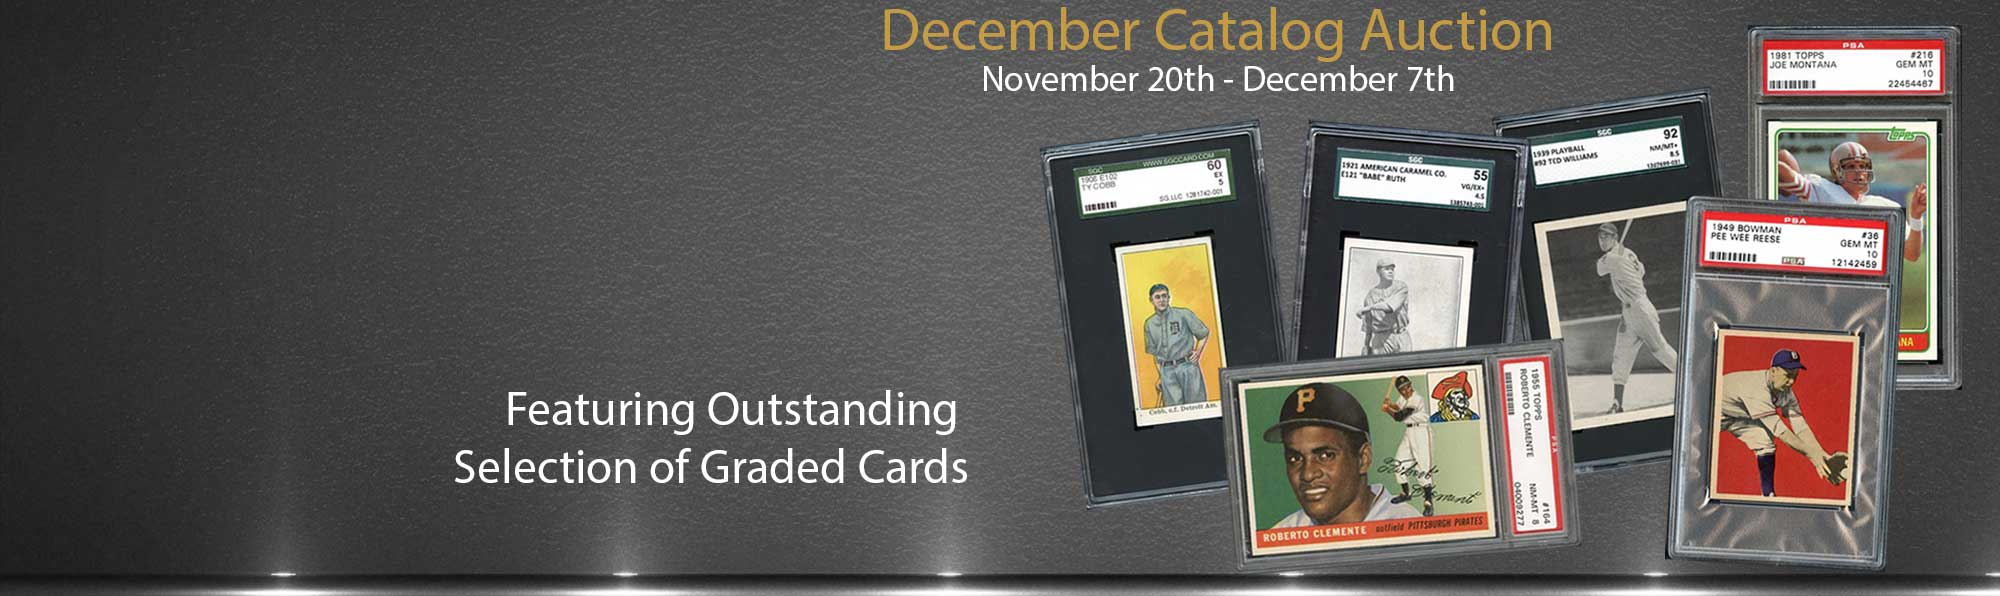 Outstanding Selection of Graded cards